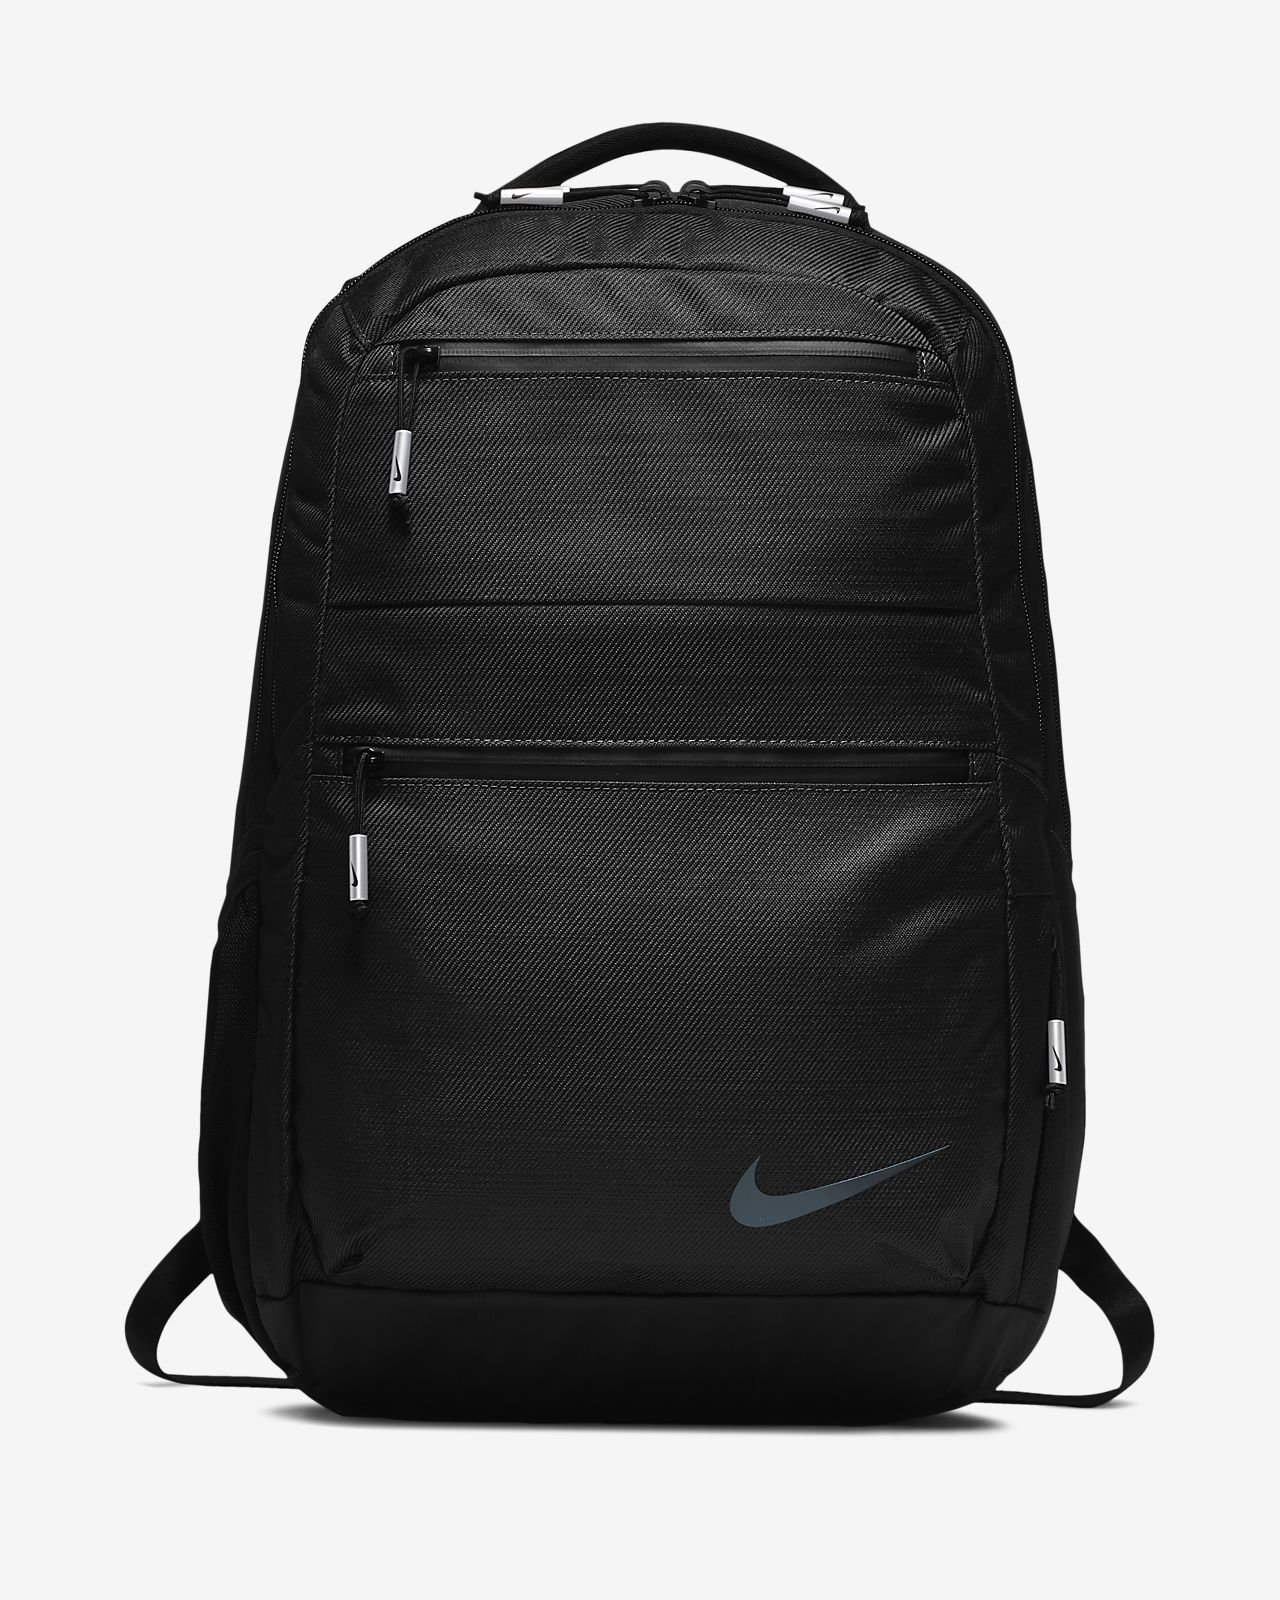 559cfff0a1 Low Resolution Nike Departure Golf Backpack Nike Departure Golf Backpack